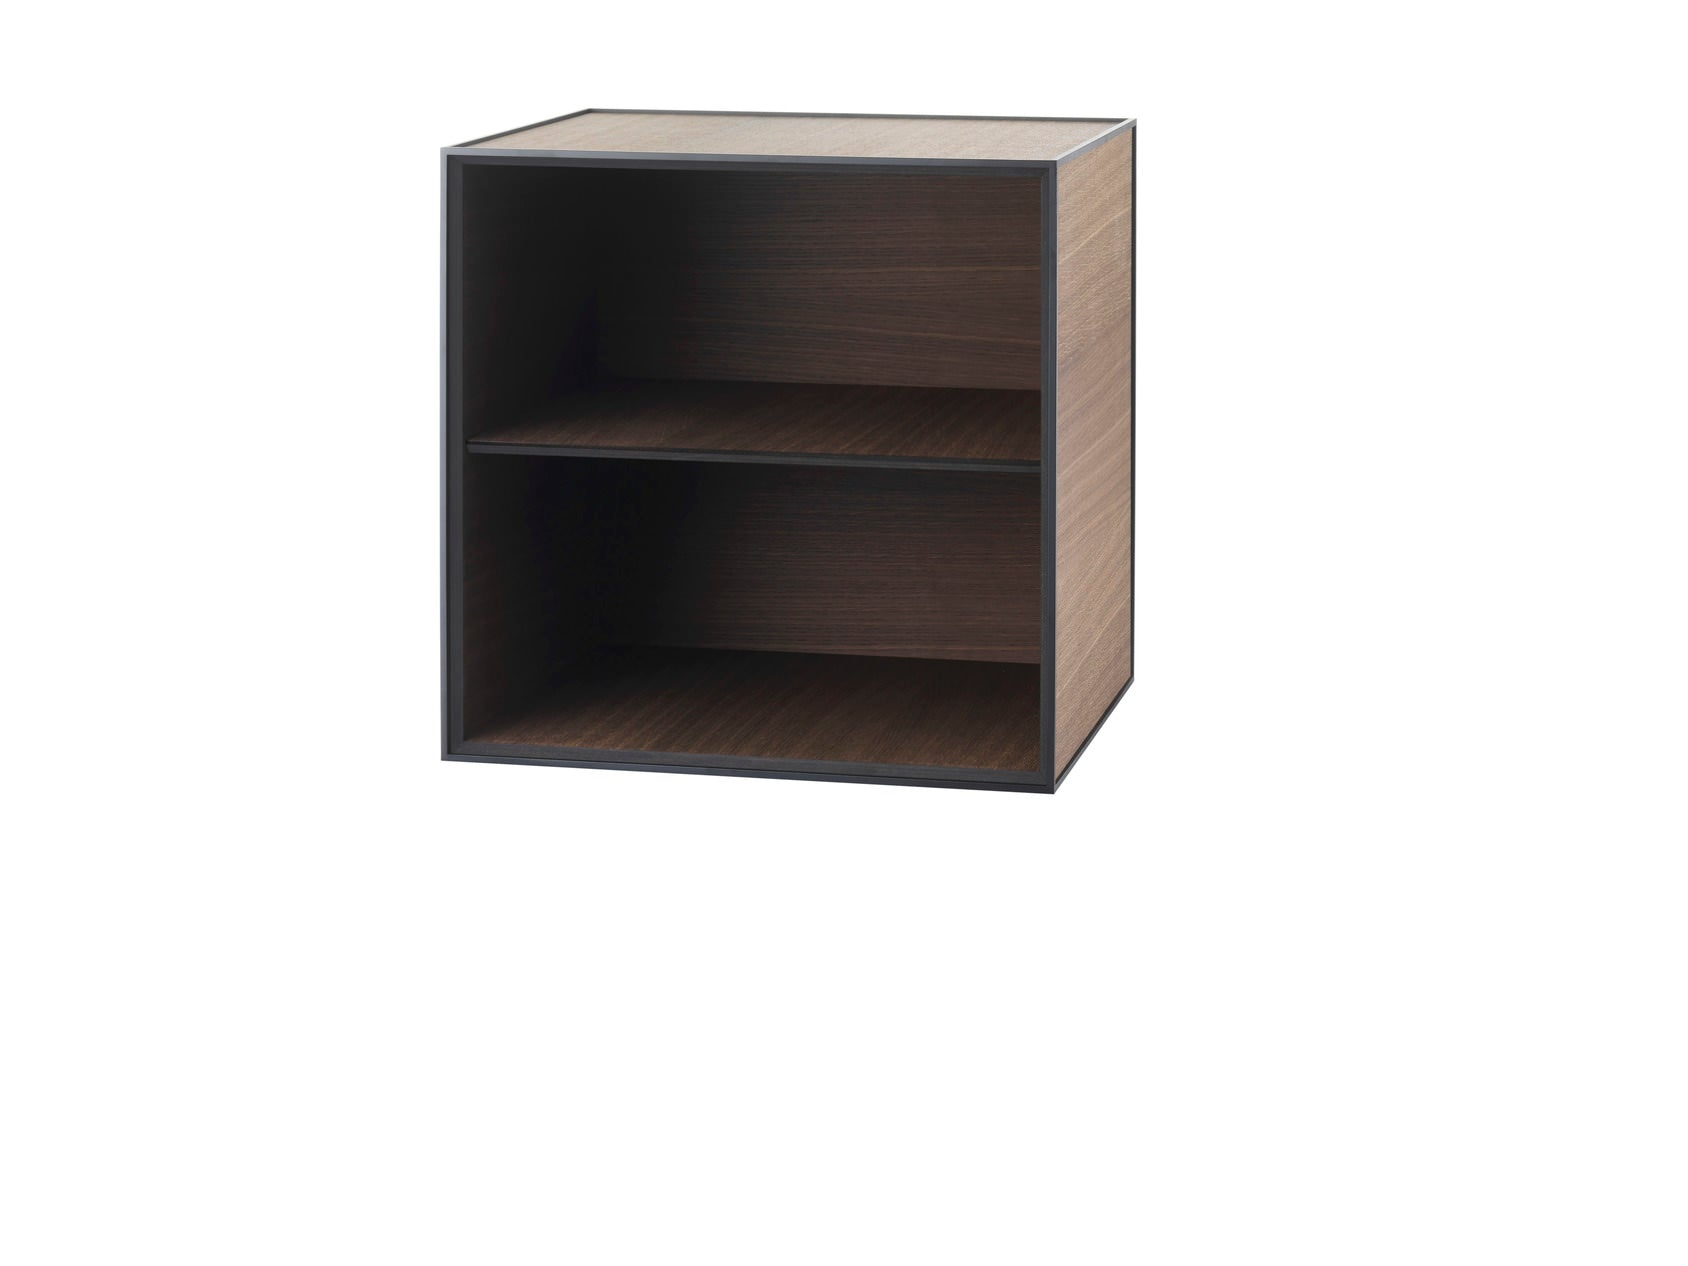 Frame 49 INCL door and shelf, 42x49x49, smoked oak fra By Lassen